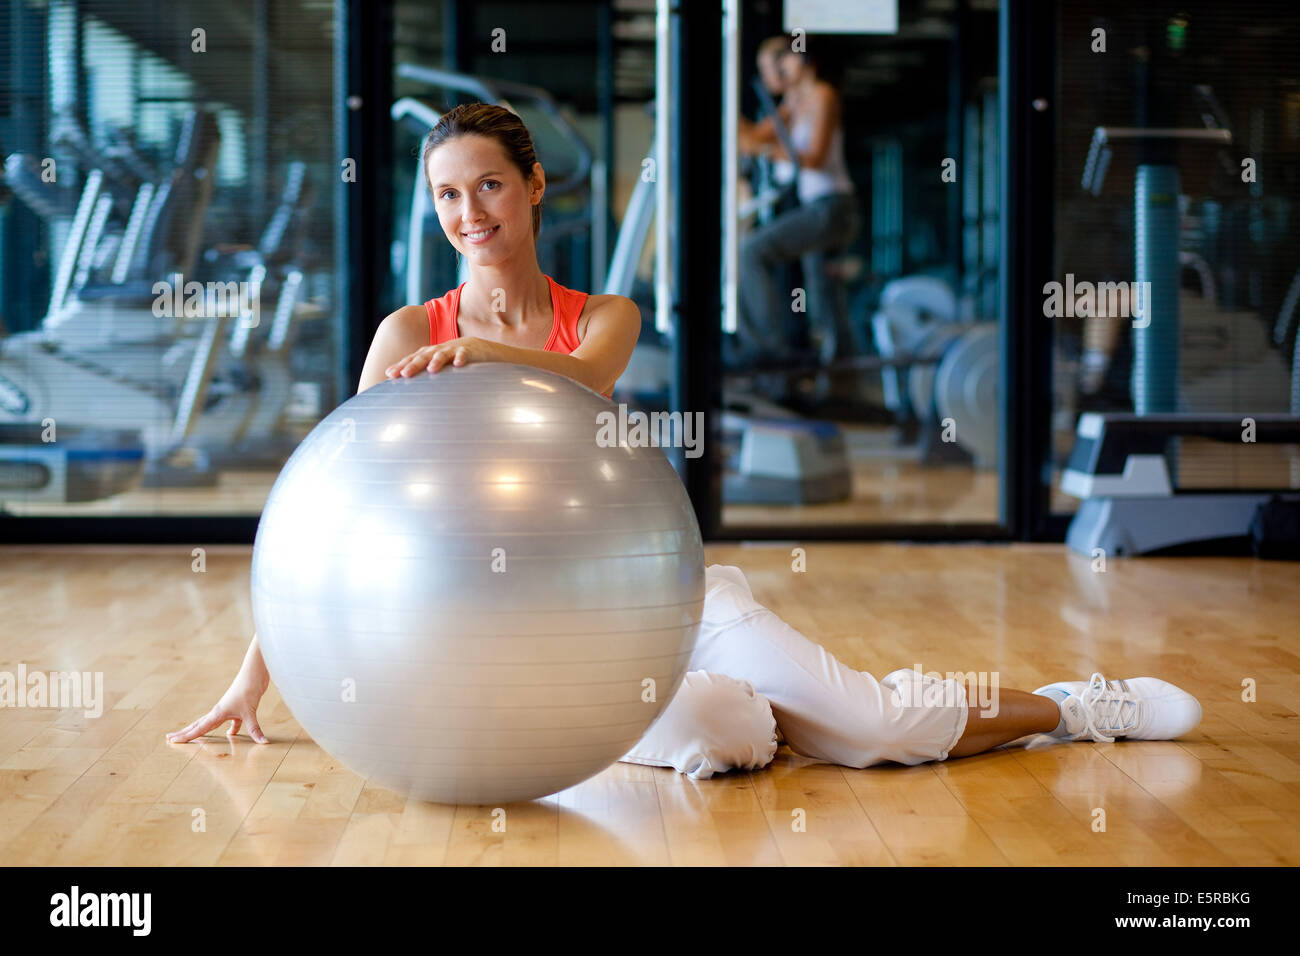 Woman with excercise ball in a gym. - Stock Image